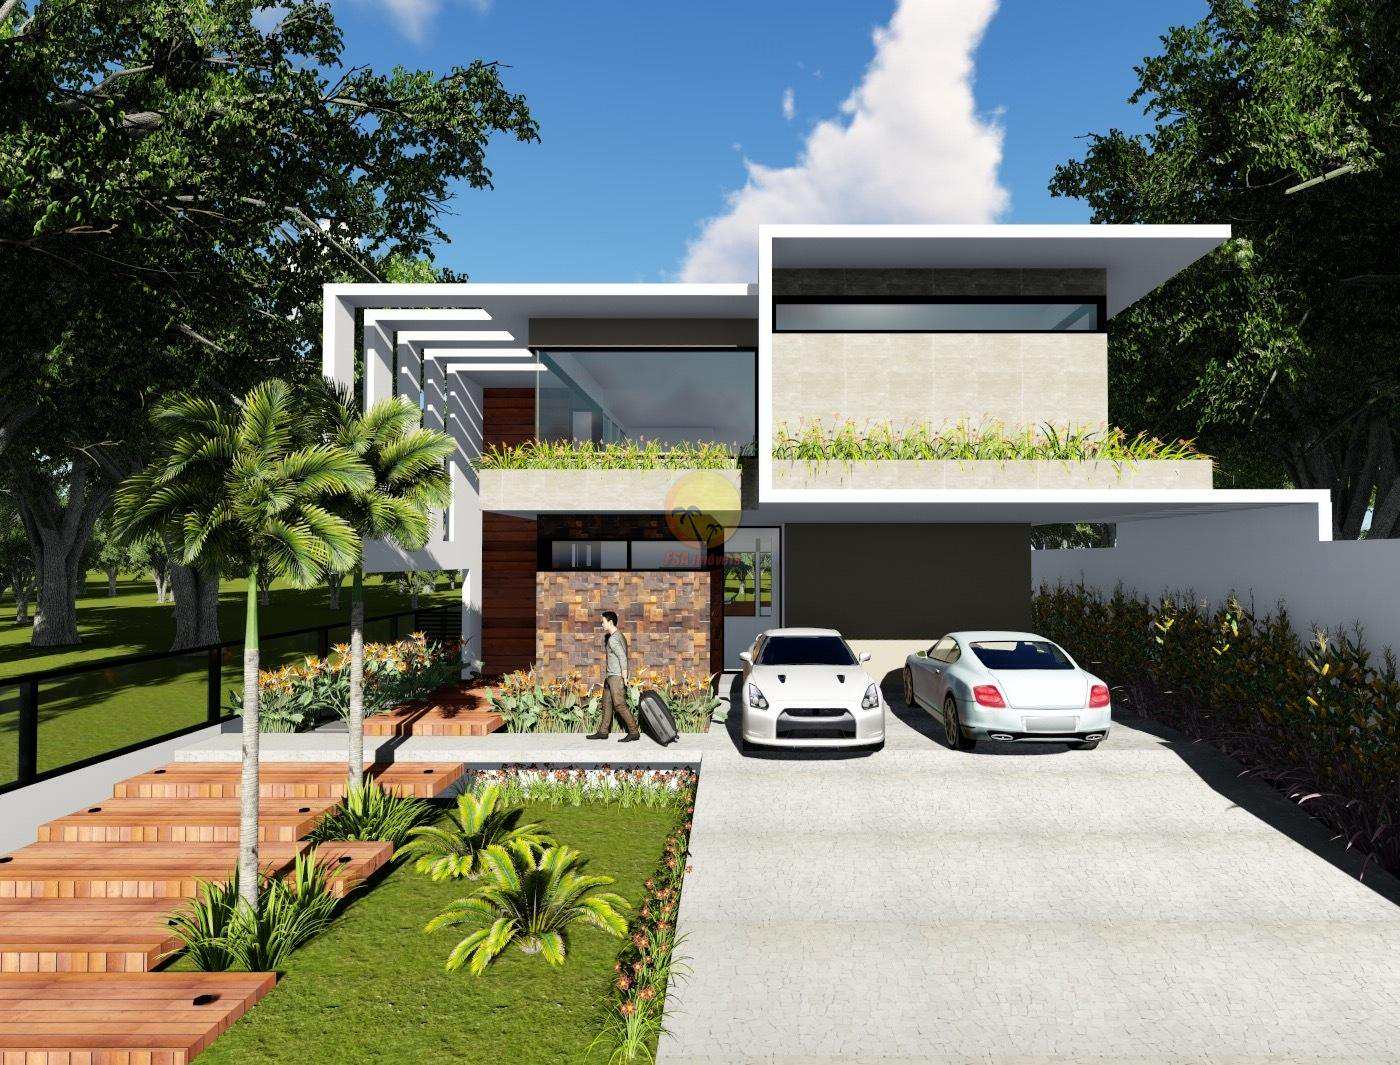 PERSPECTIVA FRONTAL - H12